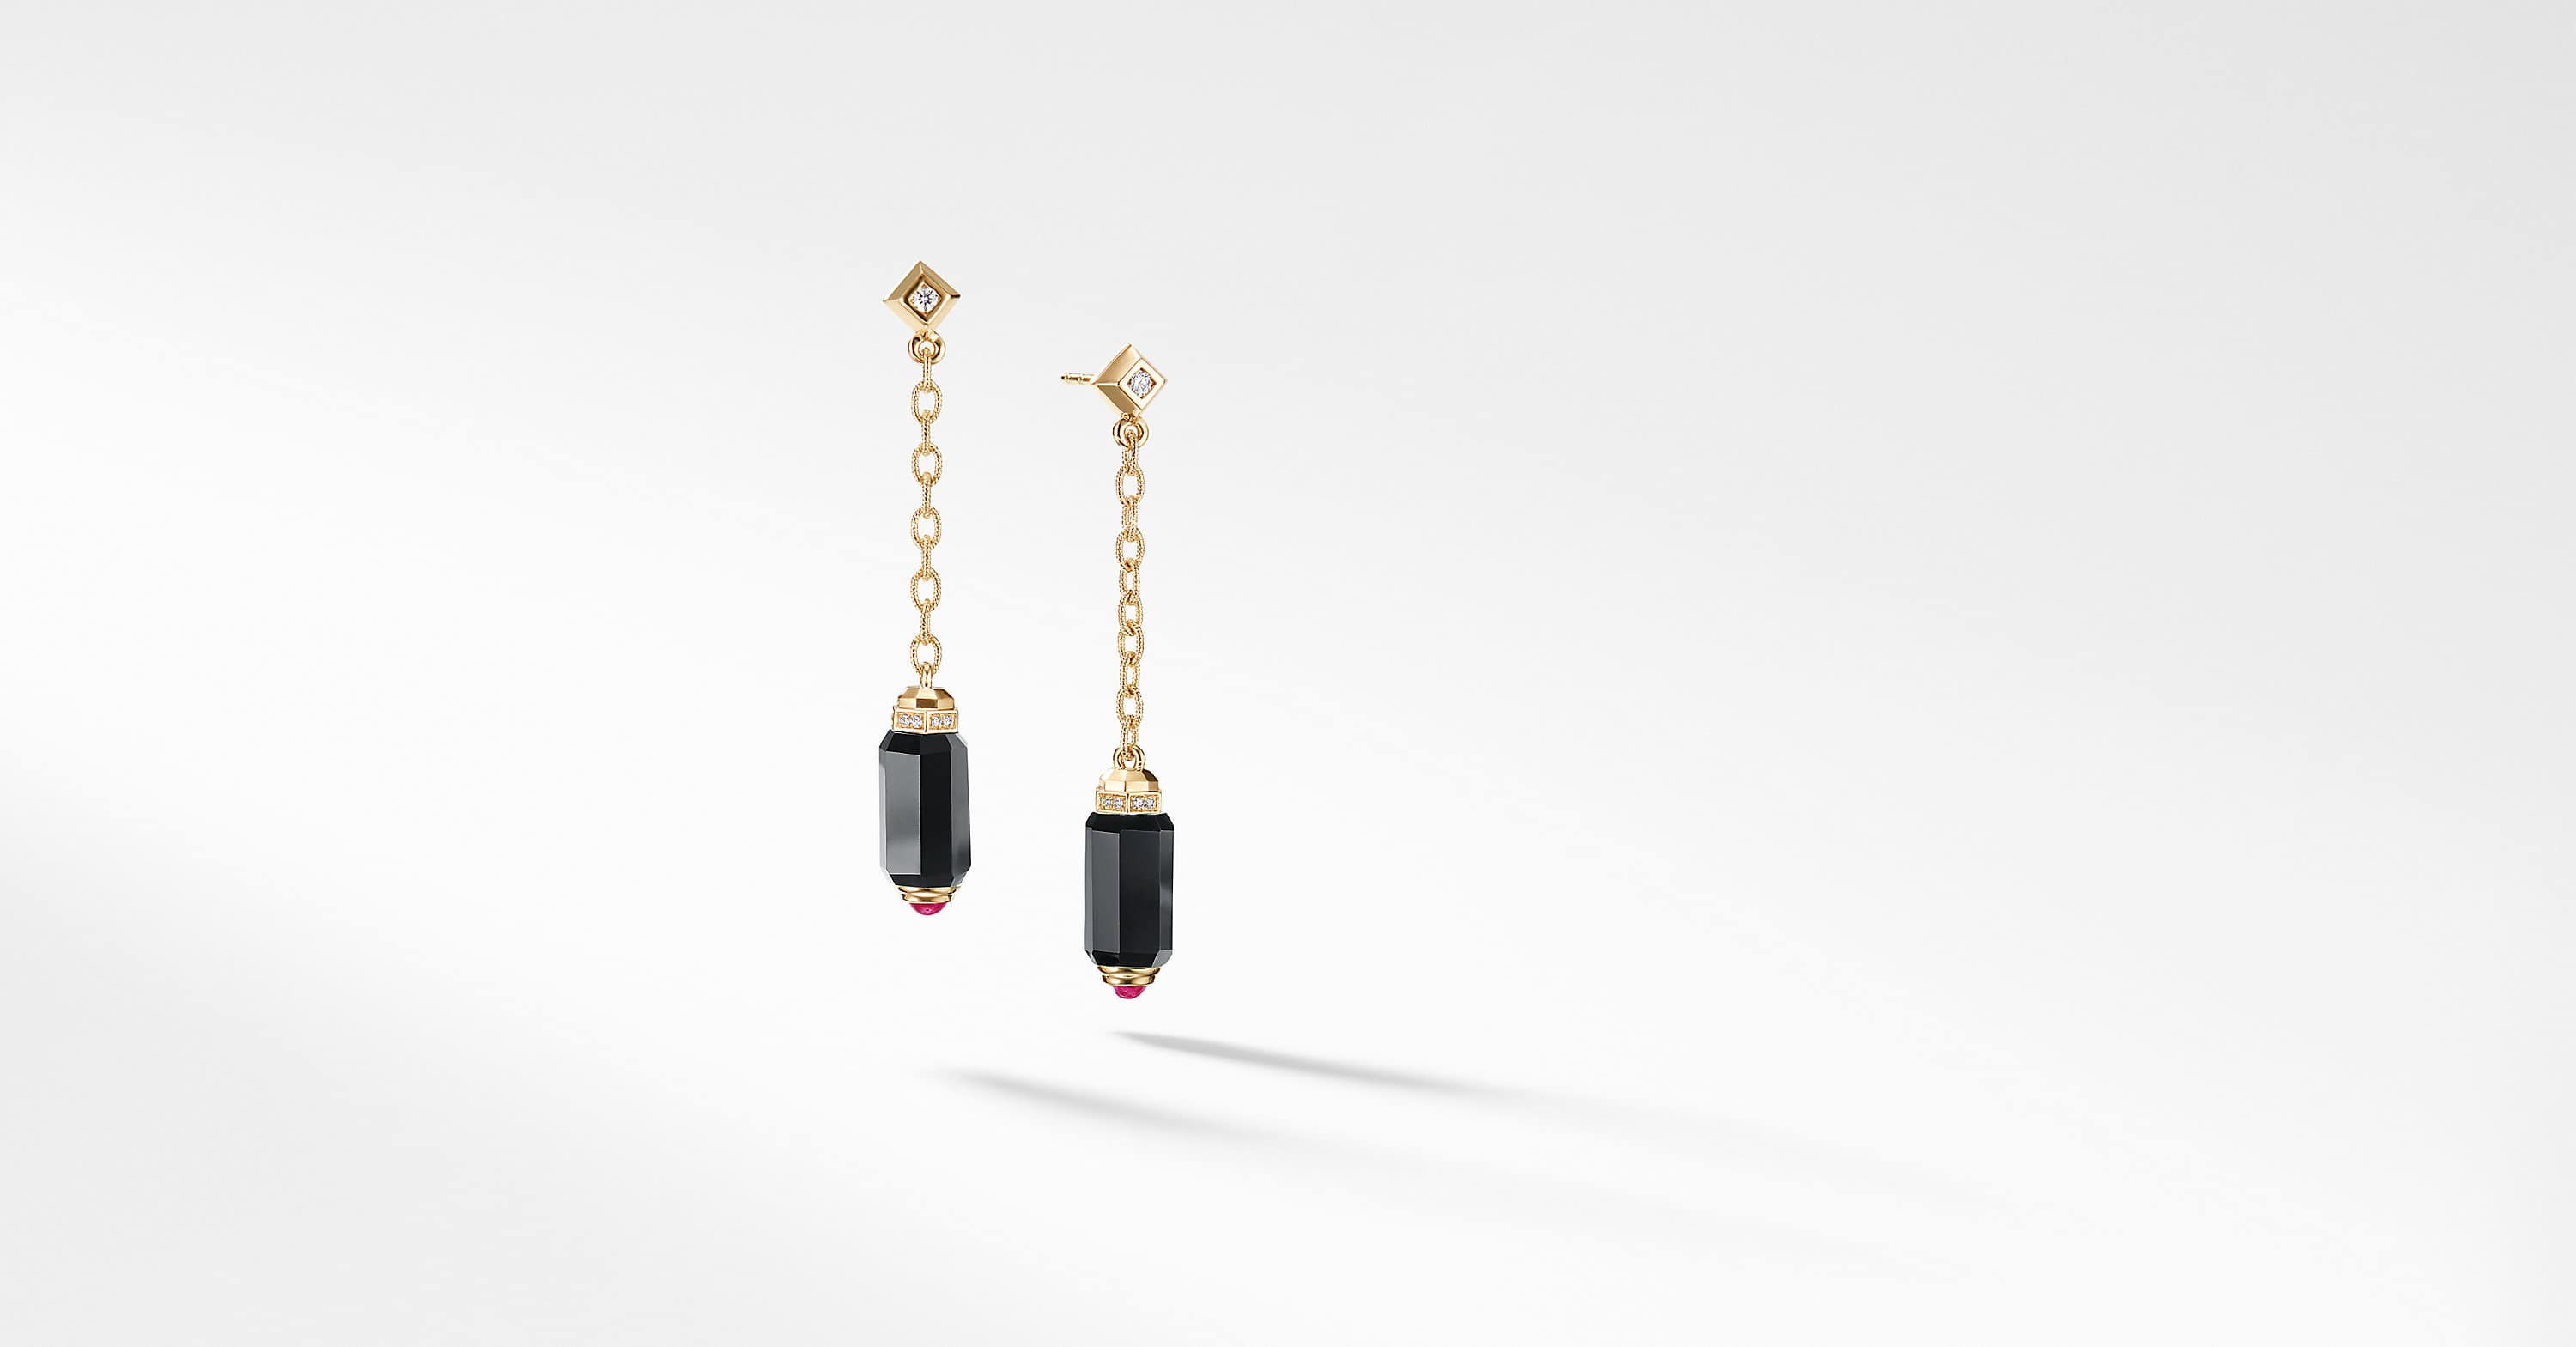 Barrels Chain Drop Earrings with Diamonds in 18K Gold